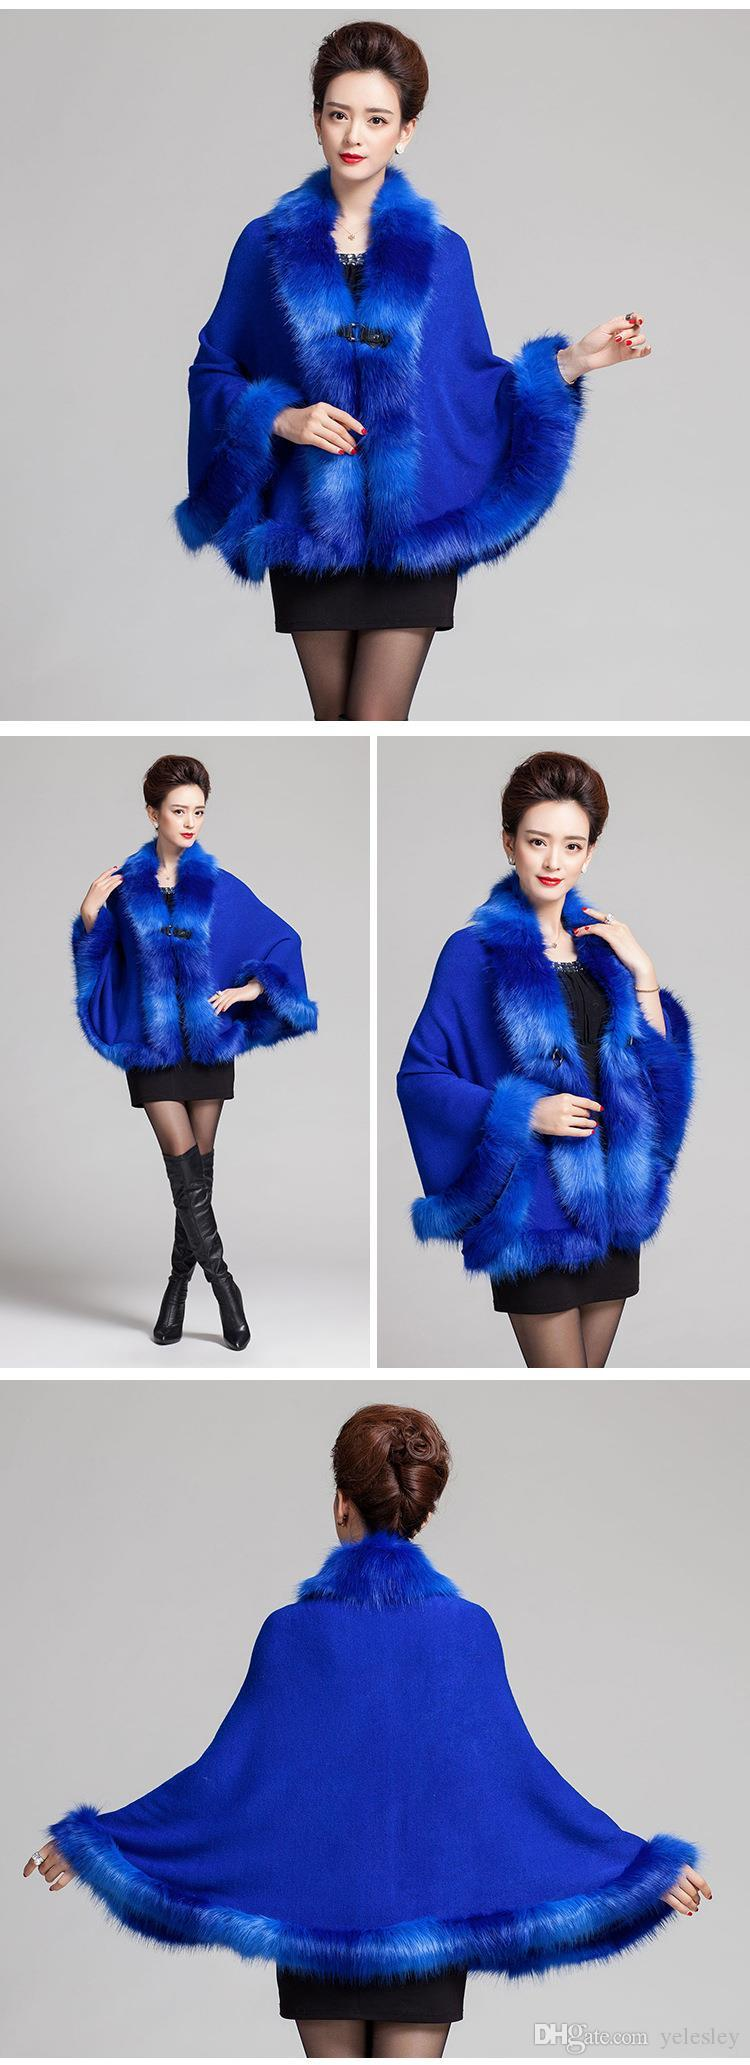 Faux Fox Fur Mixed color Poncho Coat Autumn Winter thick Women's Long Cardigan Fake Raccoon Fur Collar trim Cashmere Sweater Shawl Knitted